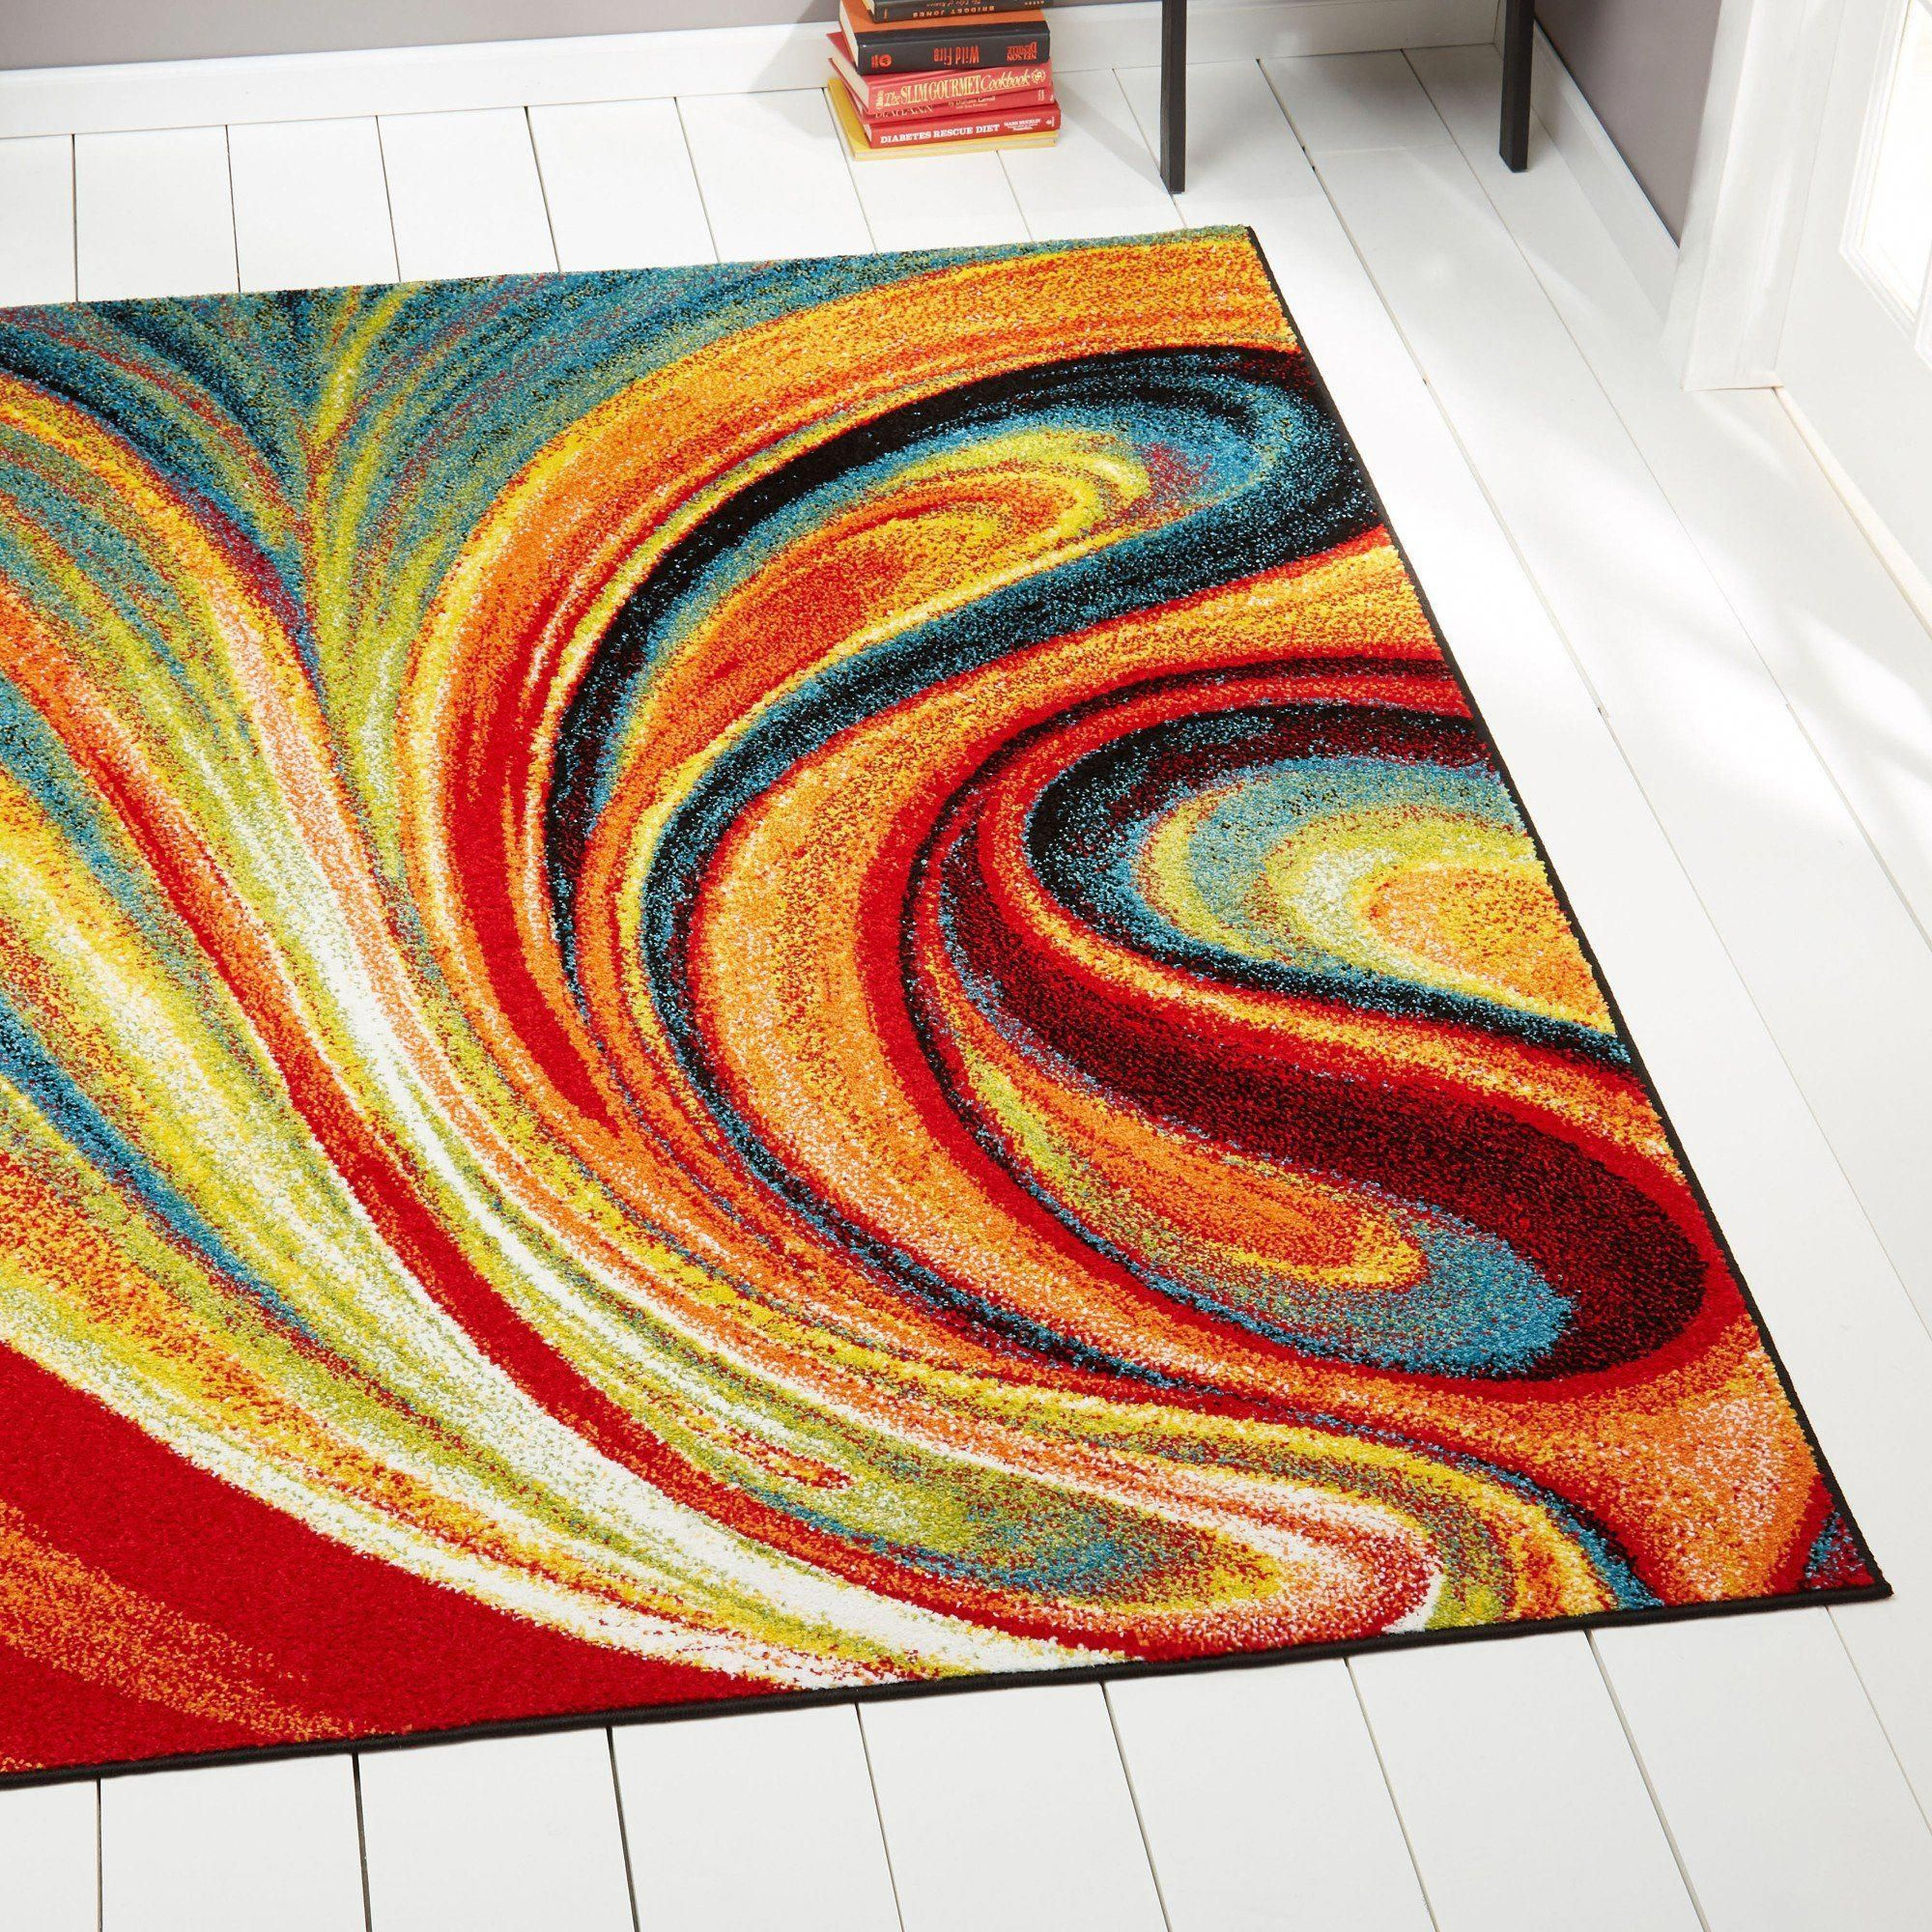 Bring A Bold Unique Style To Your Home With This Eye Catching Rug